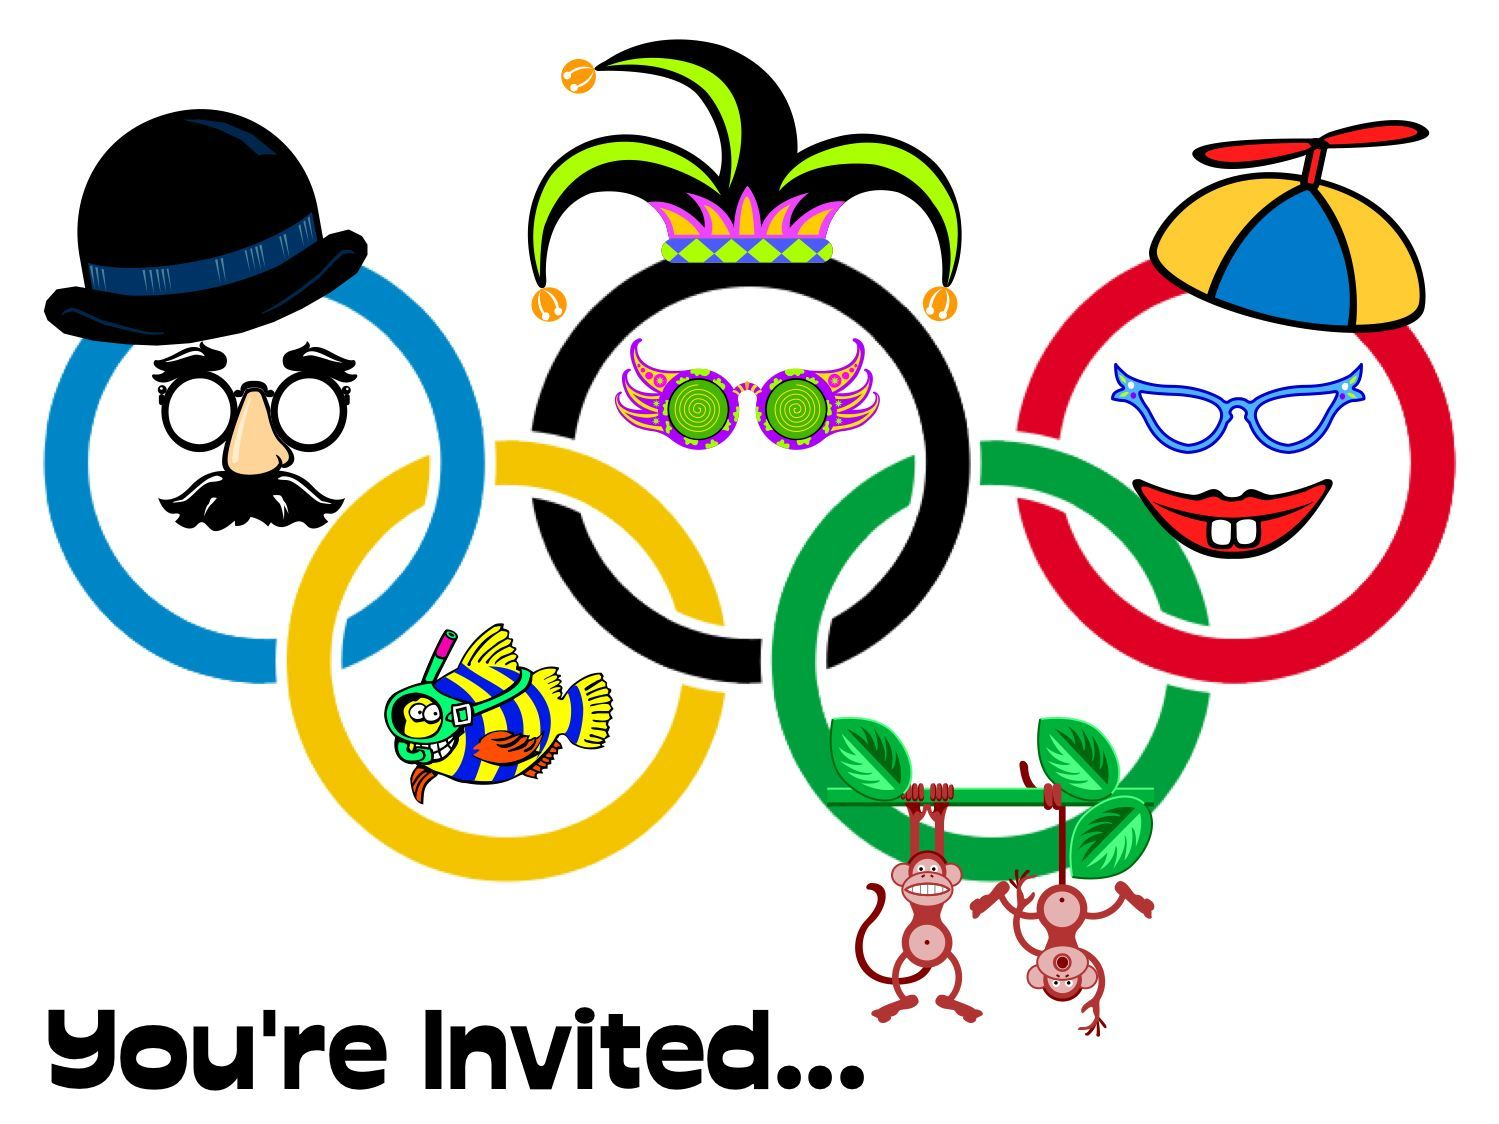 Clipart images olympics svg free download clipart | Olympics Party Theme | Birthday, Olympics, Family fun day svg free download